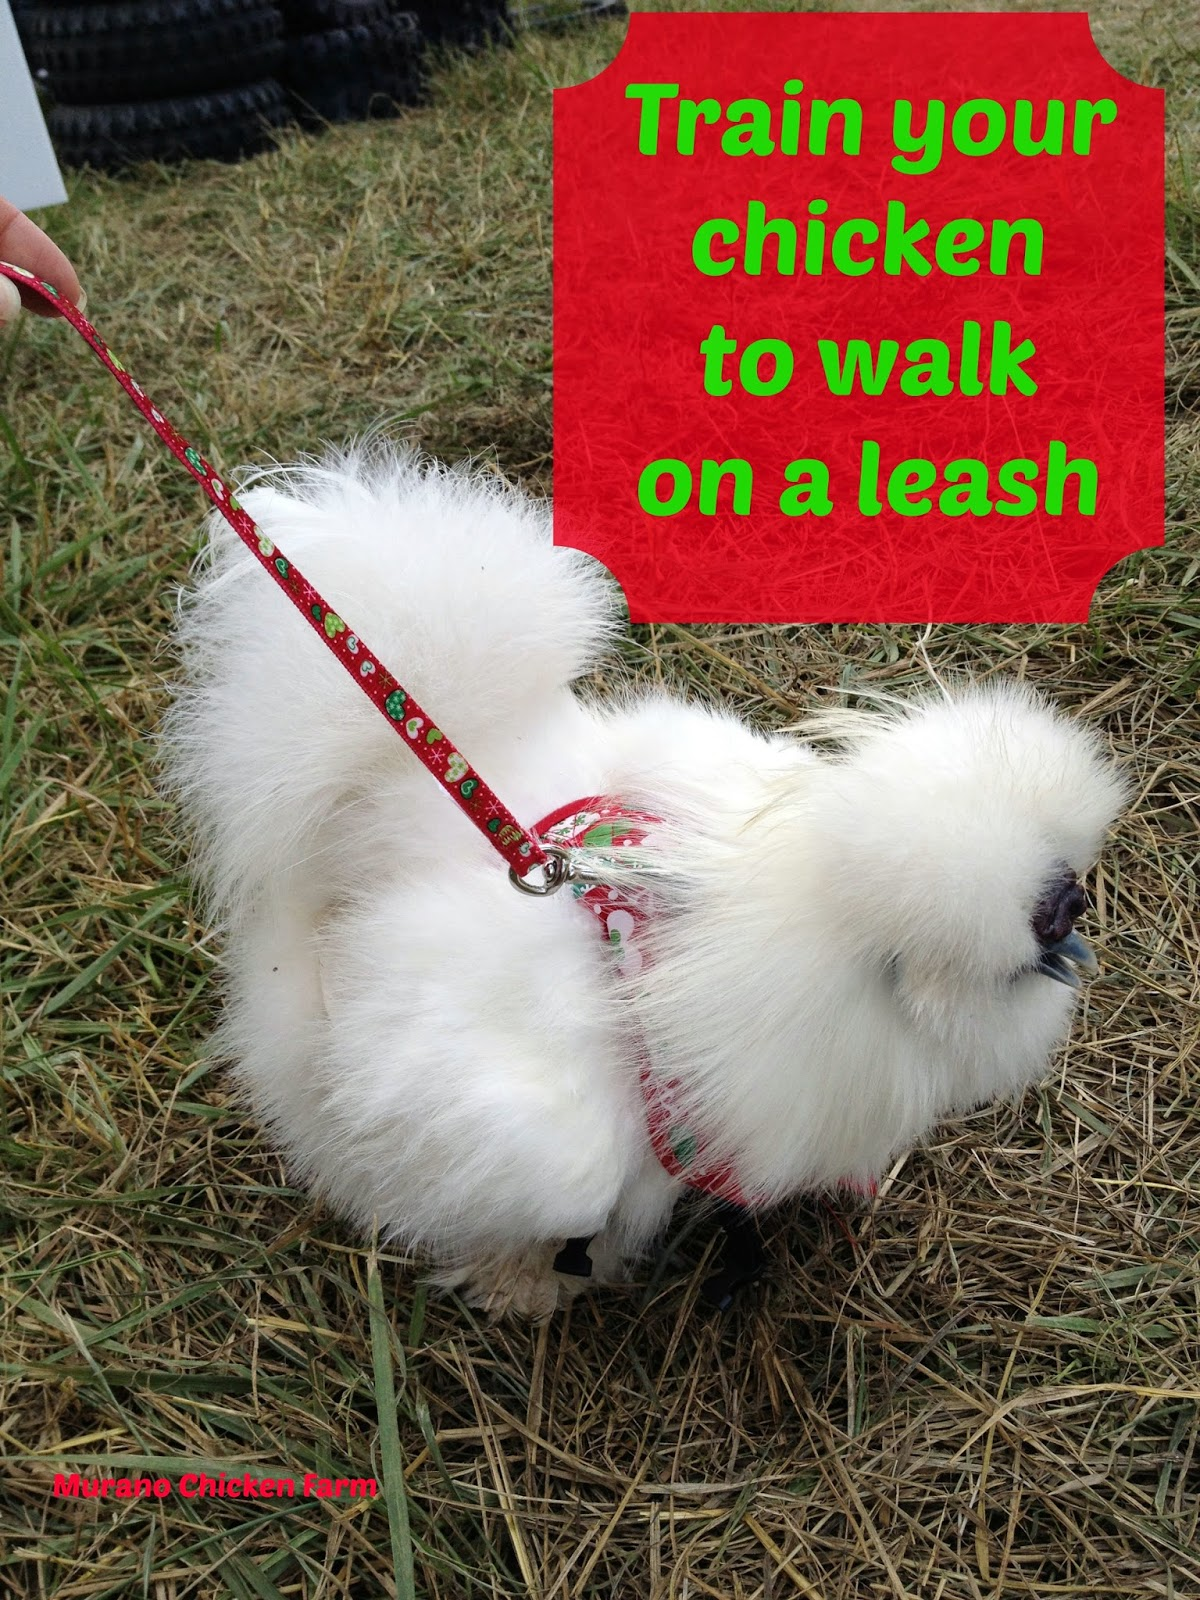 train your chicken to walk on a leash!